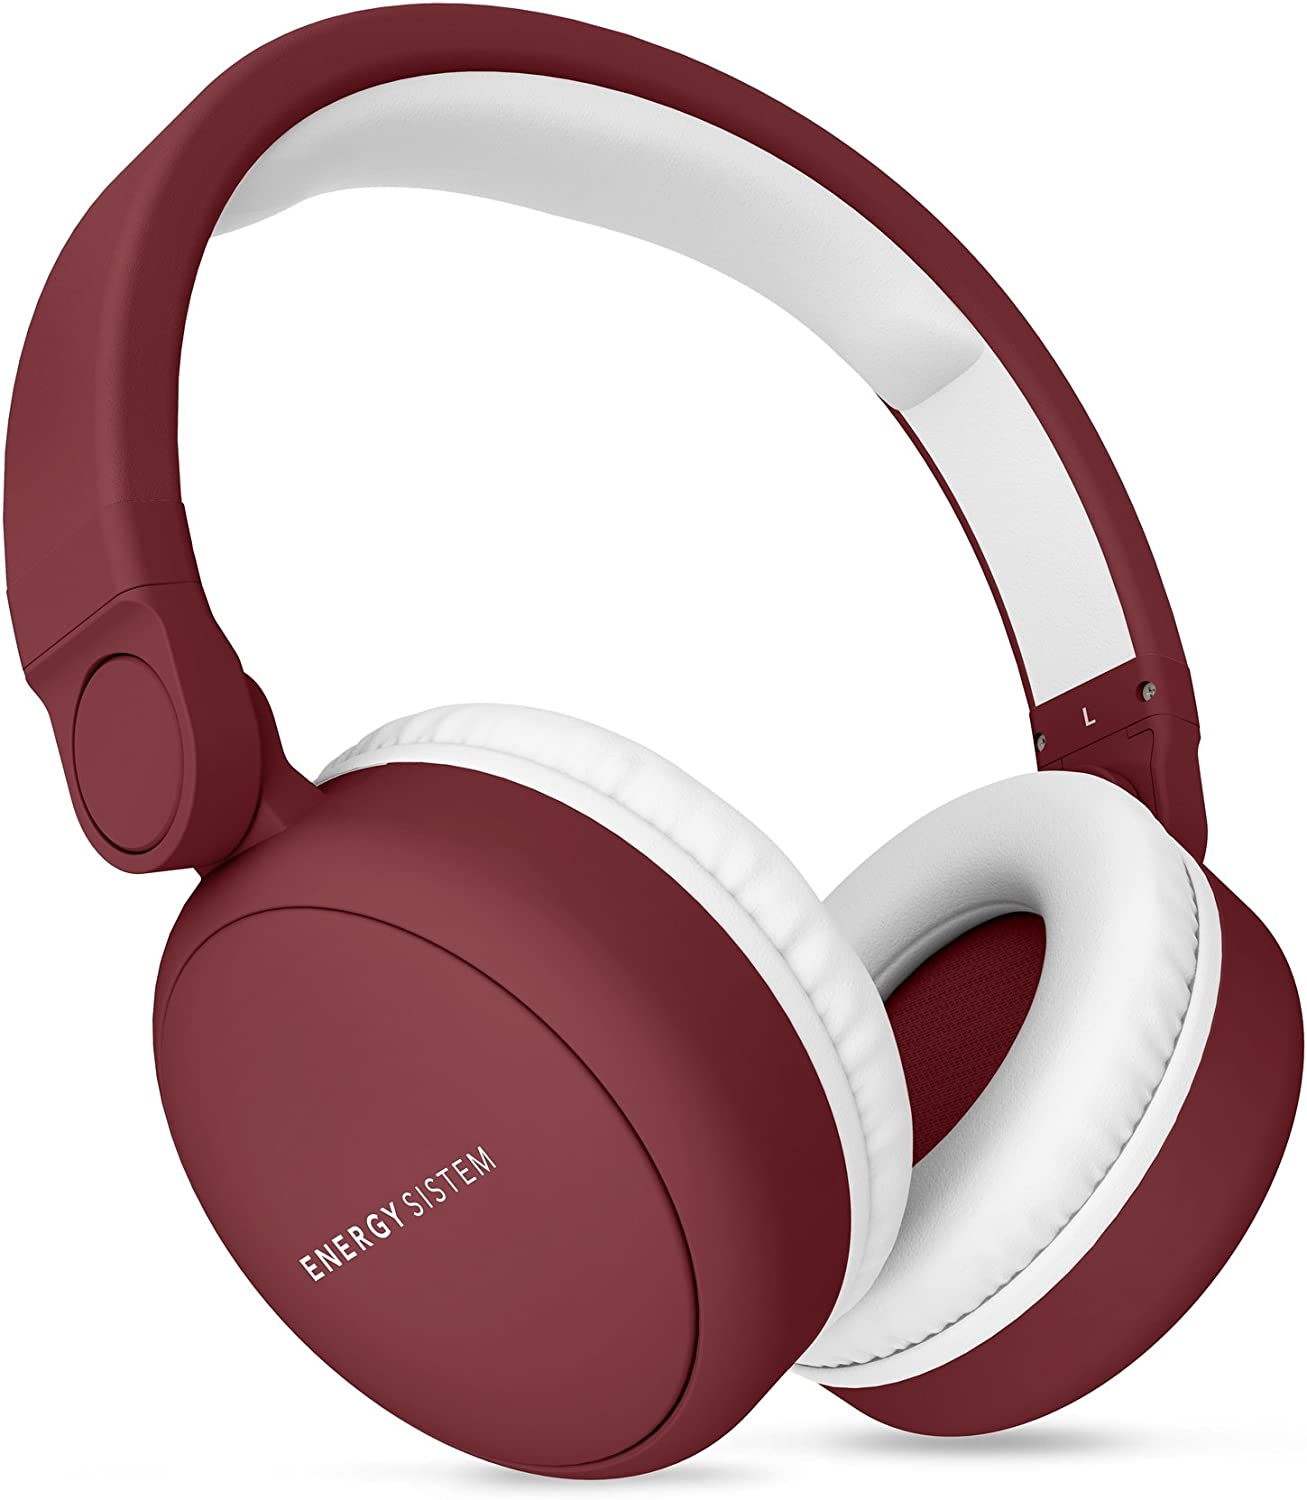 Energy Headphones 2 Auriculares inalámbricos con Bluetooth (Circumaural, Plegable, bateria Recargable,Audio-in) Ruby Red